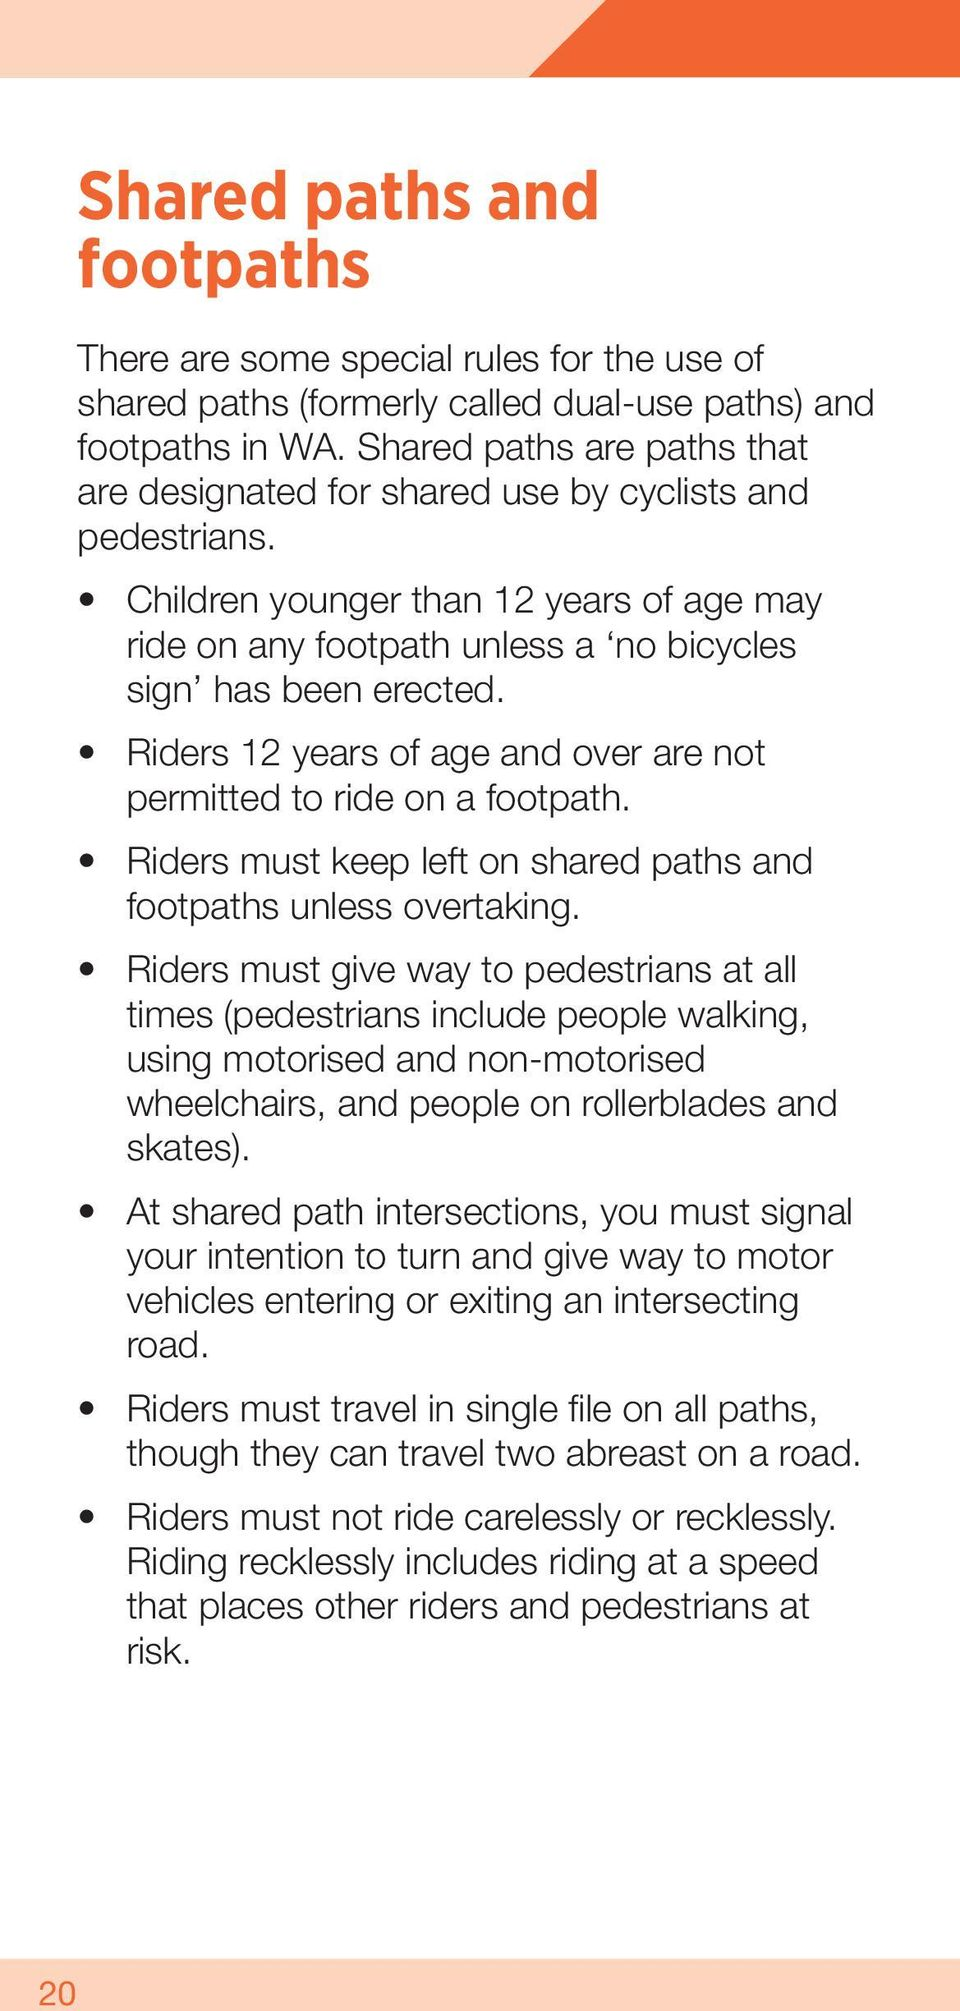 Riders 12 years of age and over are not permitted to ride on a footpath. Riders must keep left on shared paths and footpaths unless overtaking.